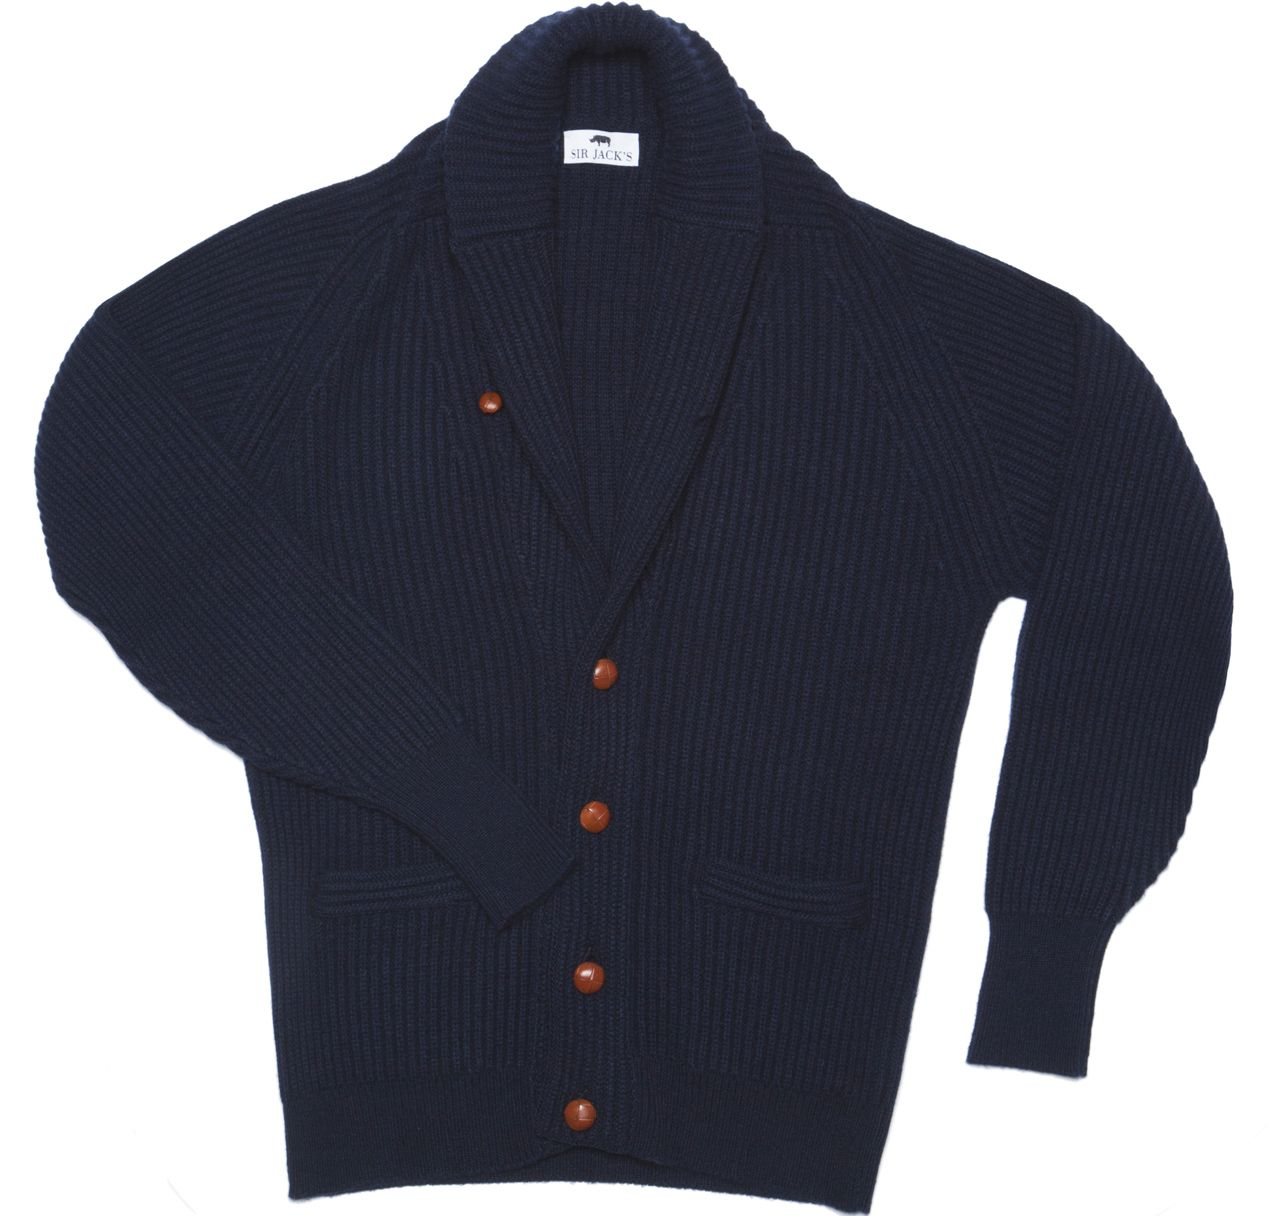 SIR JACK'S - Cashmere Shawl Cardigan Sweater in Navy, $890.00 (http://www.sirjacks.com/cashmere-shawl-cardigan-sweater-in-navy/)